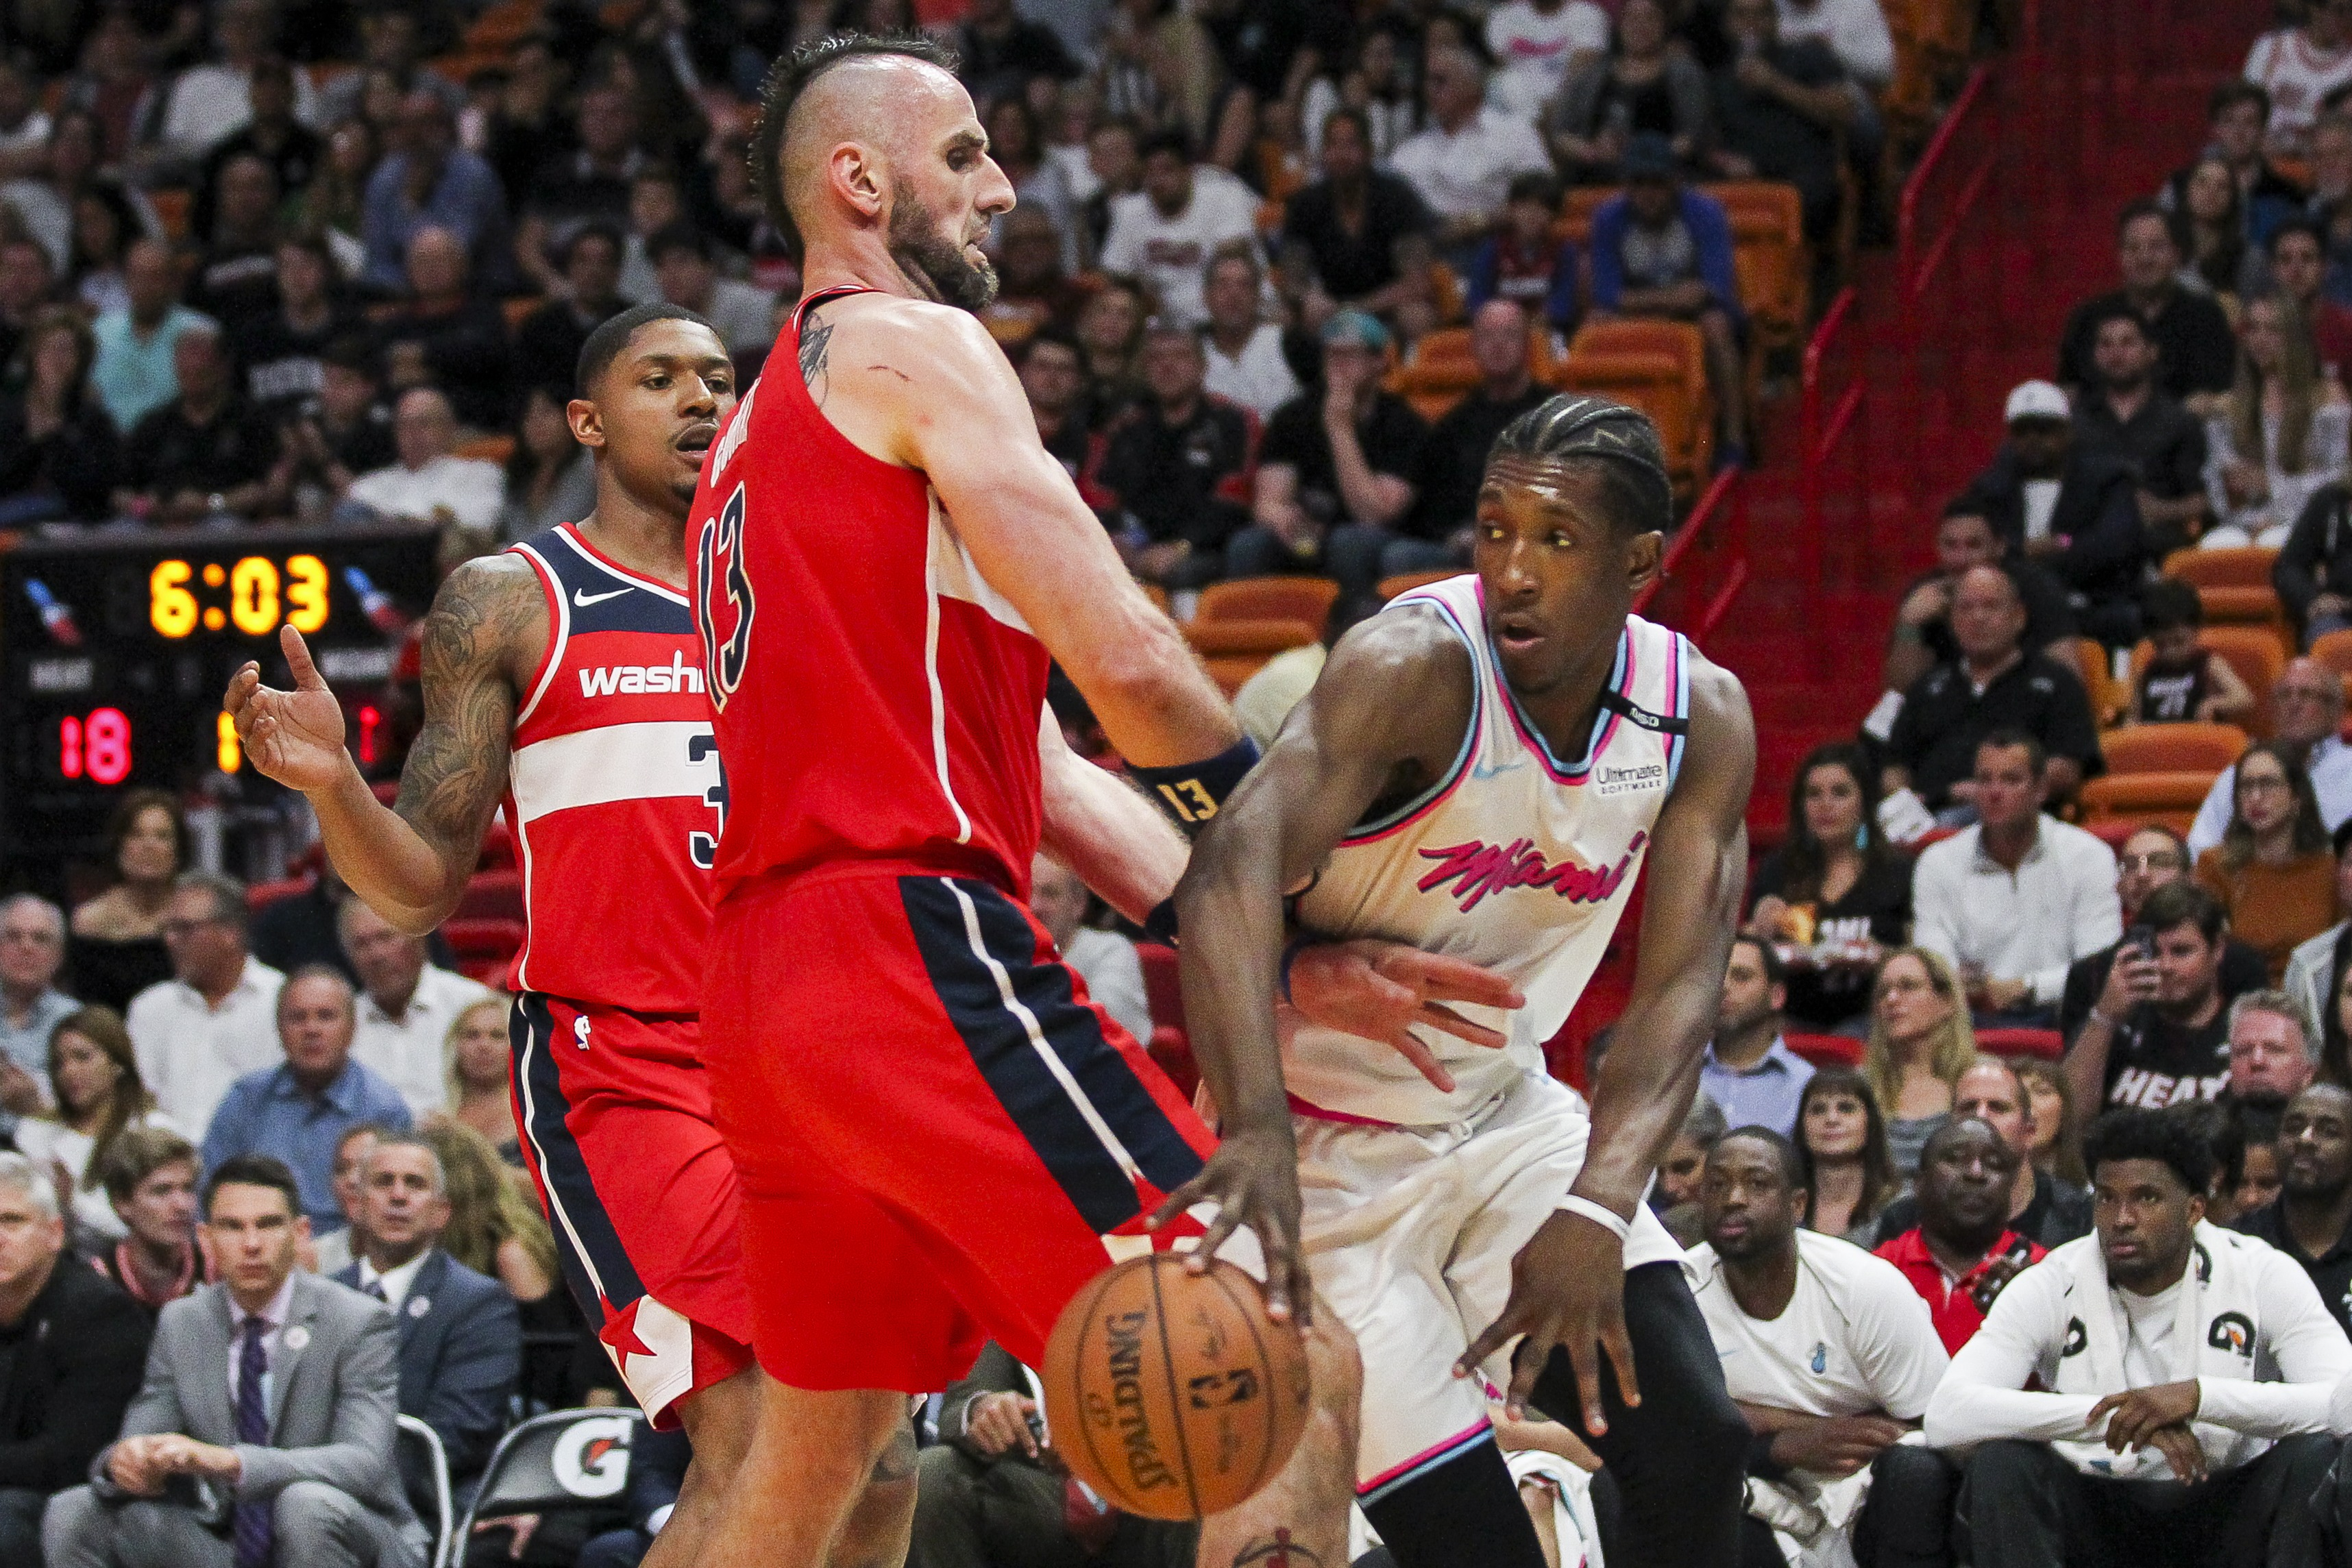 Miami Heat take down Washington Wizards by 27 at home